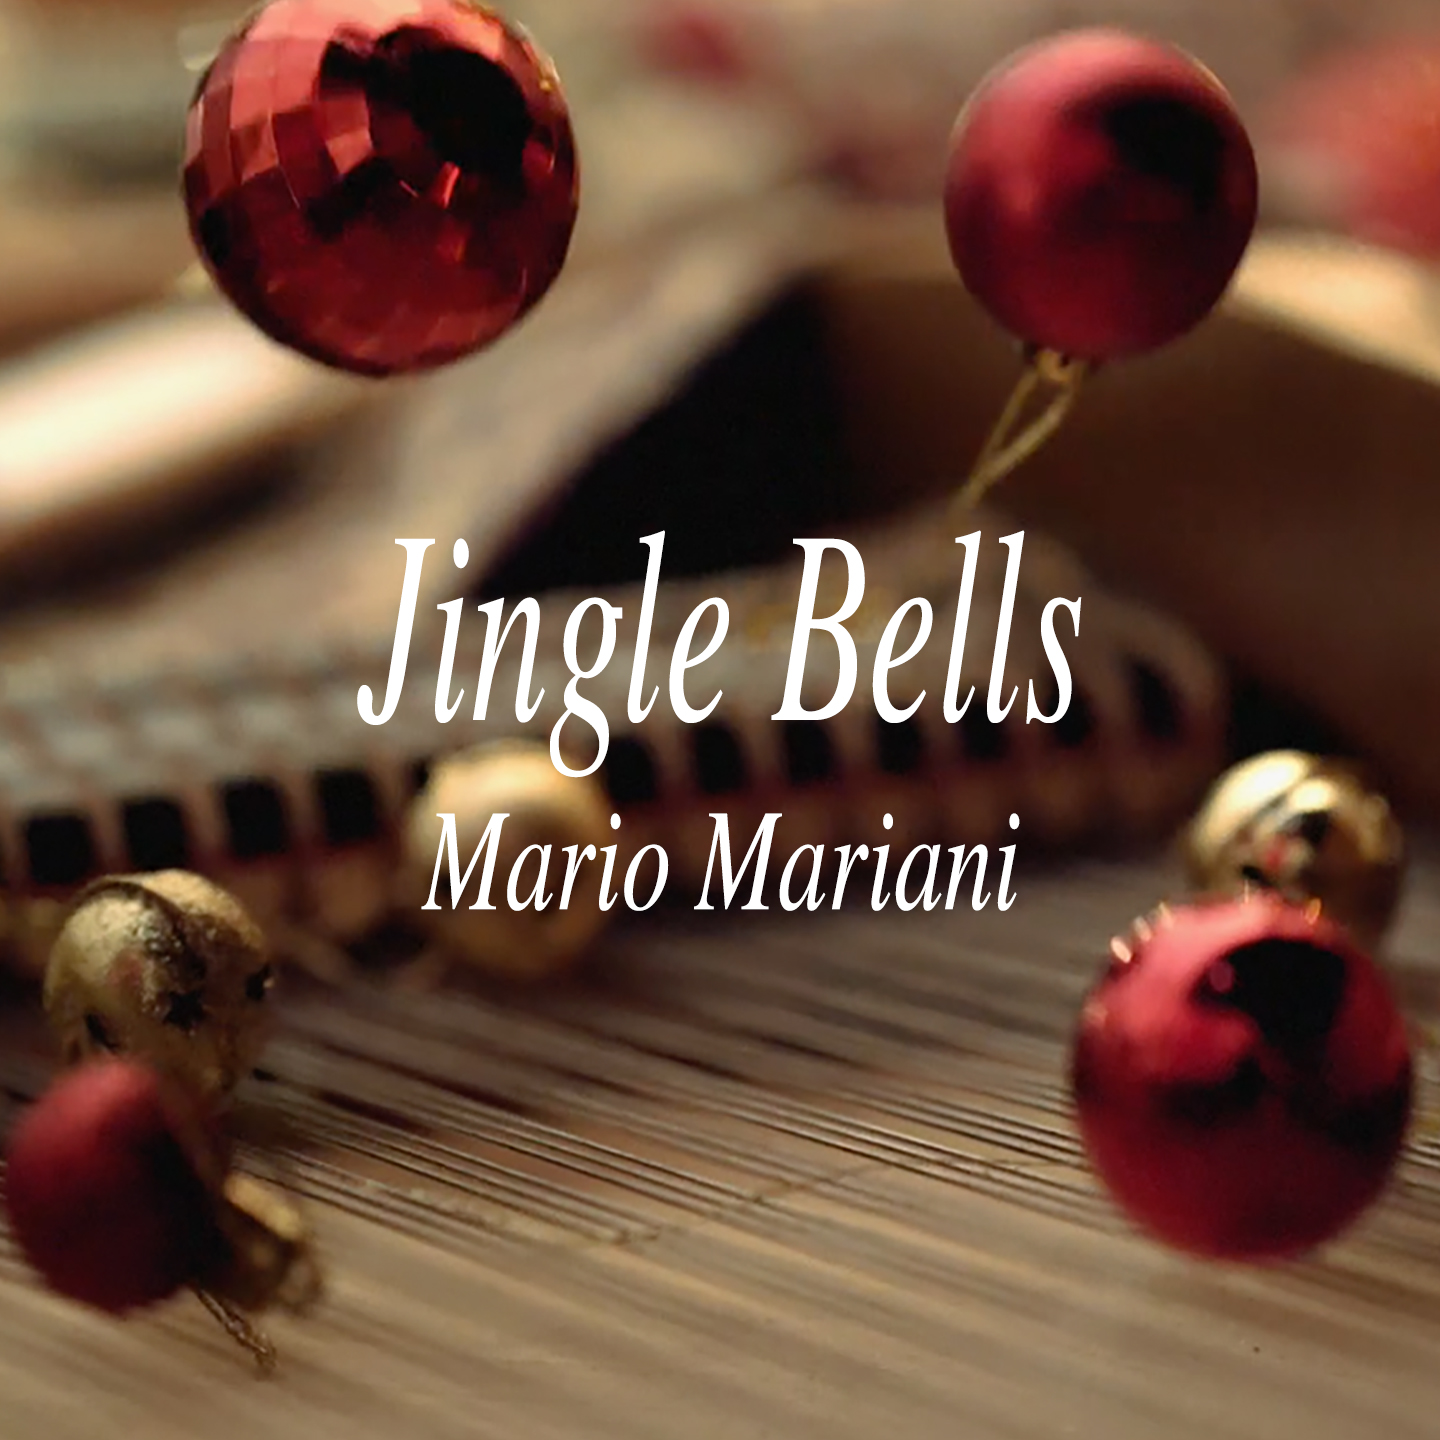 Jingle Bells (Unconventional Piano Version)